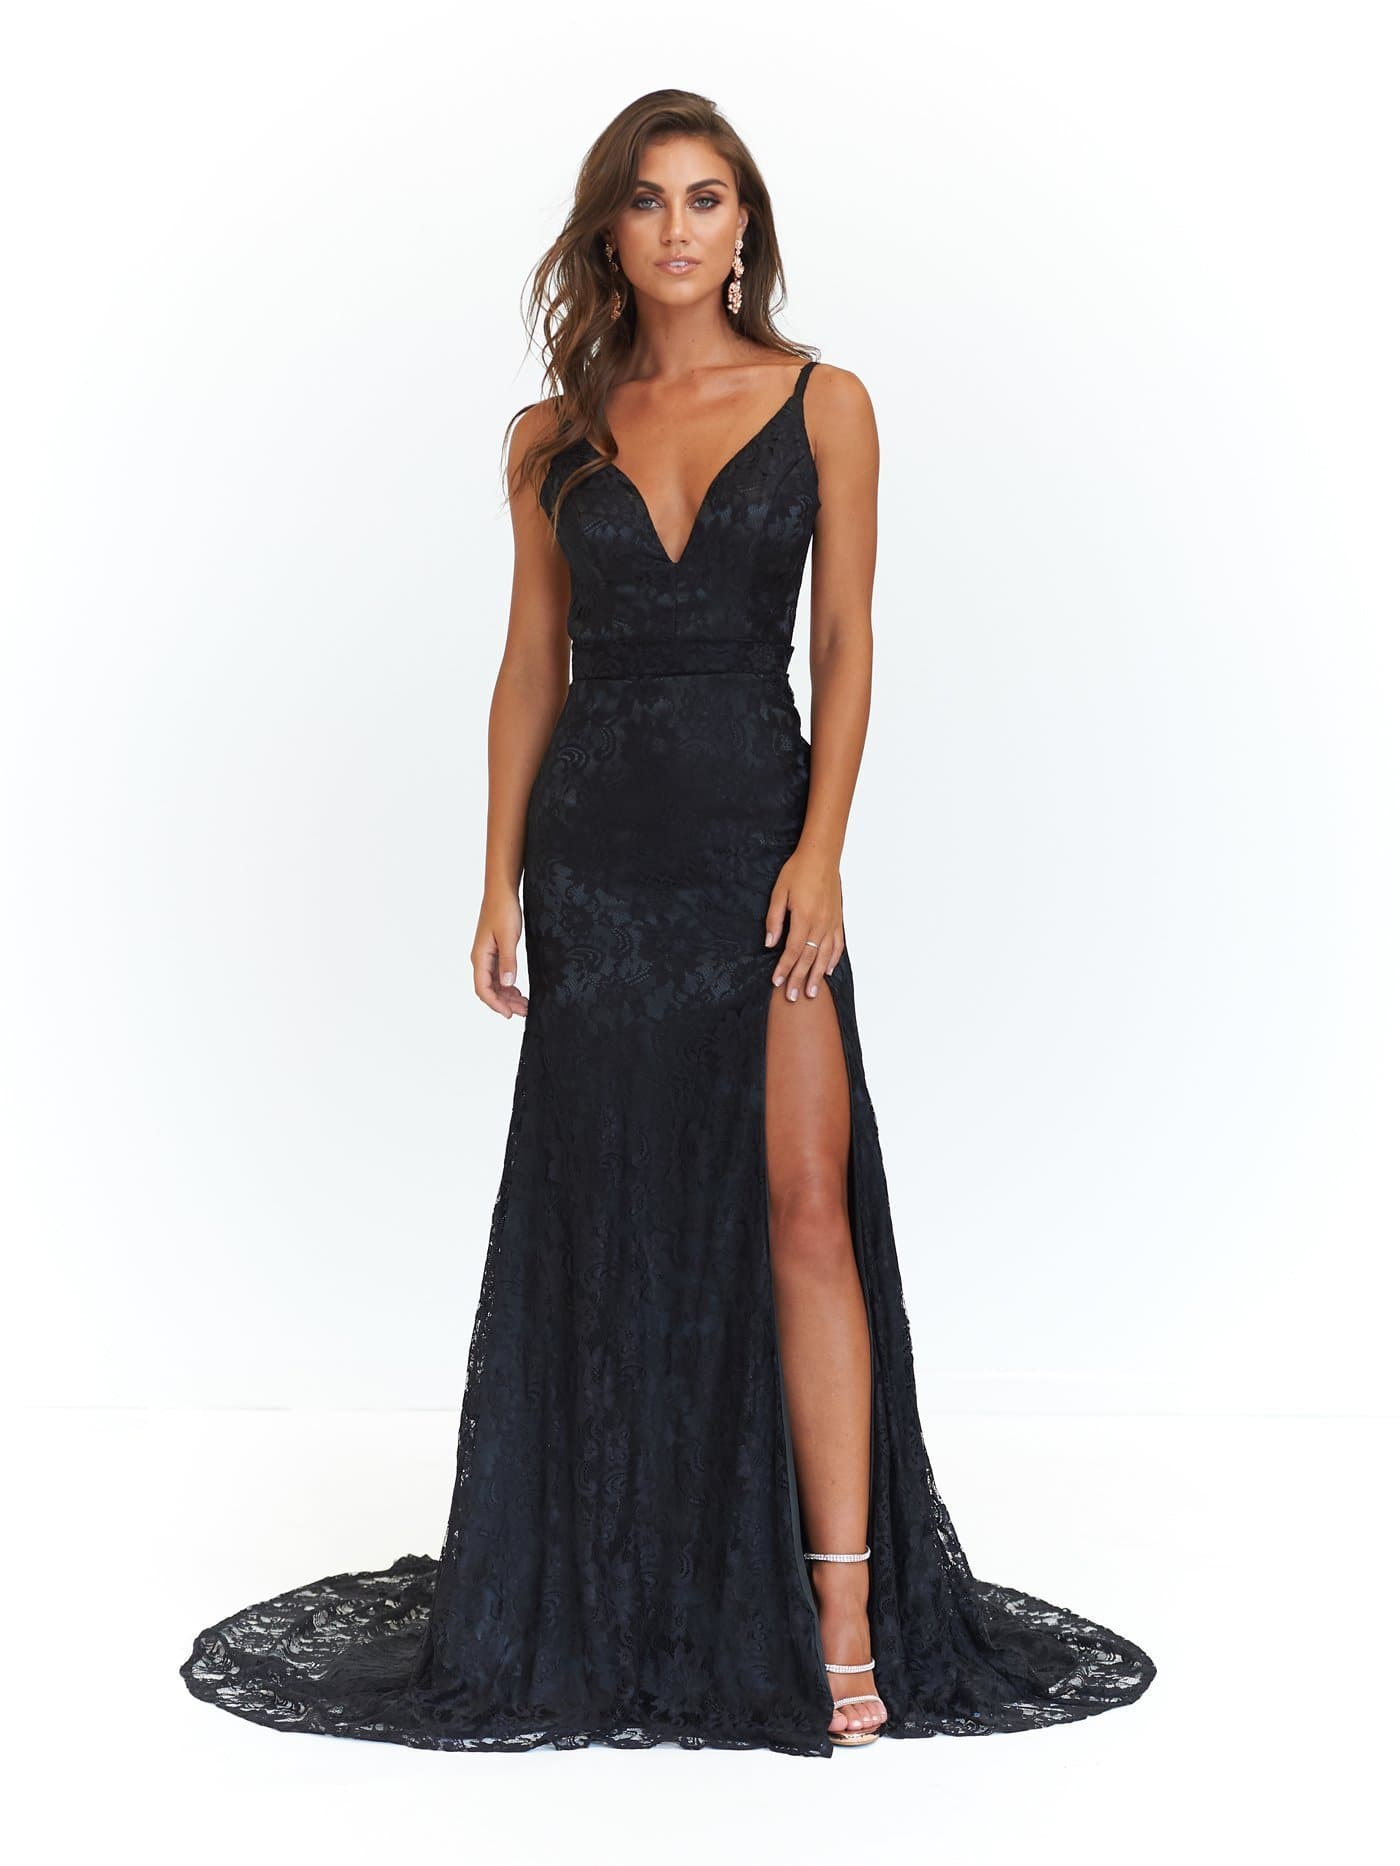 Ayla Formal Dress - Black Lace V Neck Mermaid Gown with Split – A&N ...